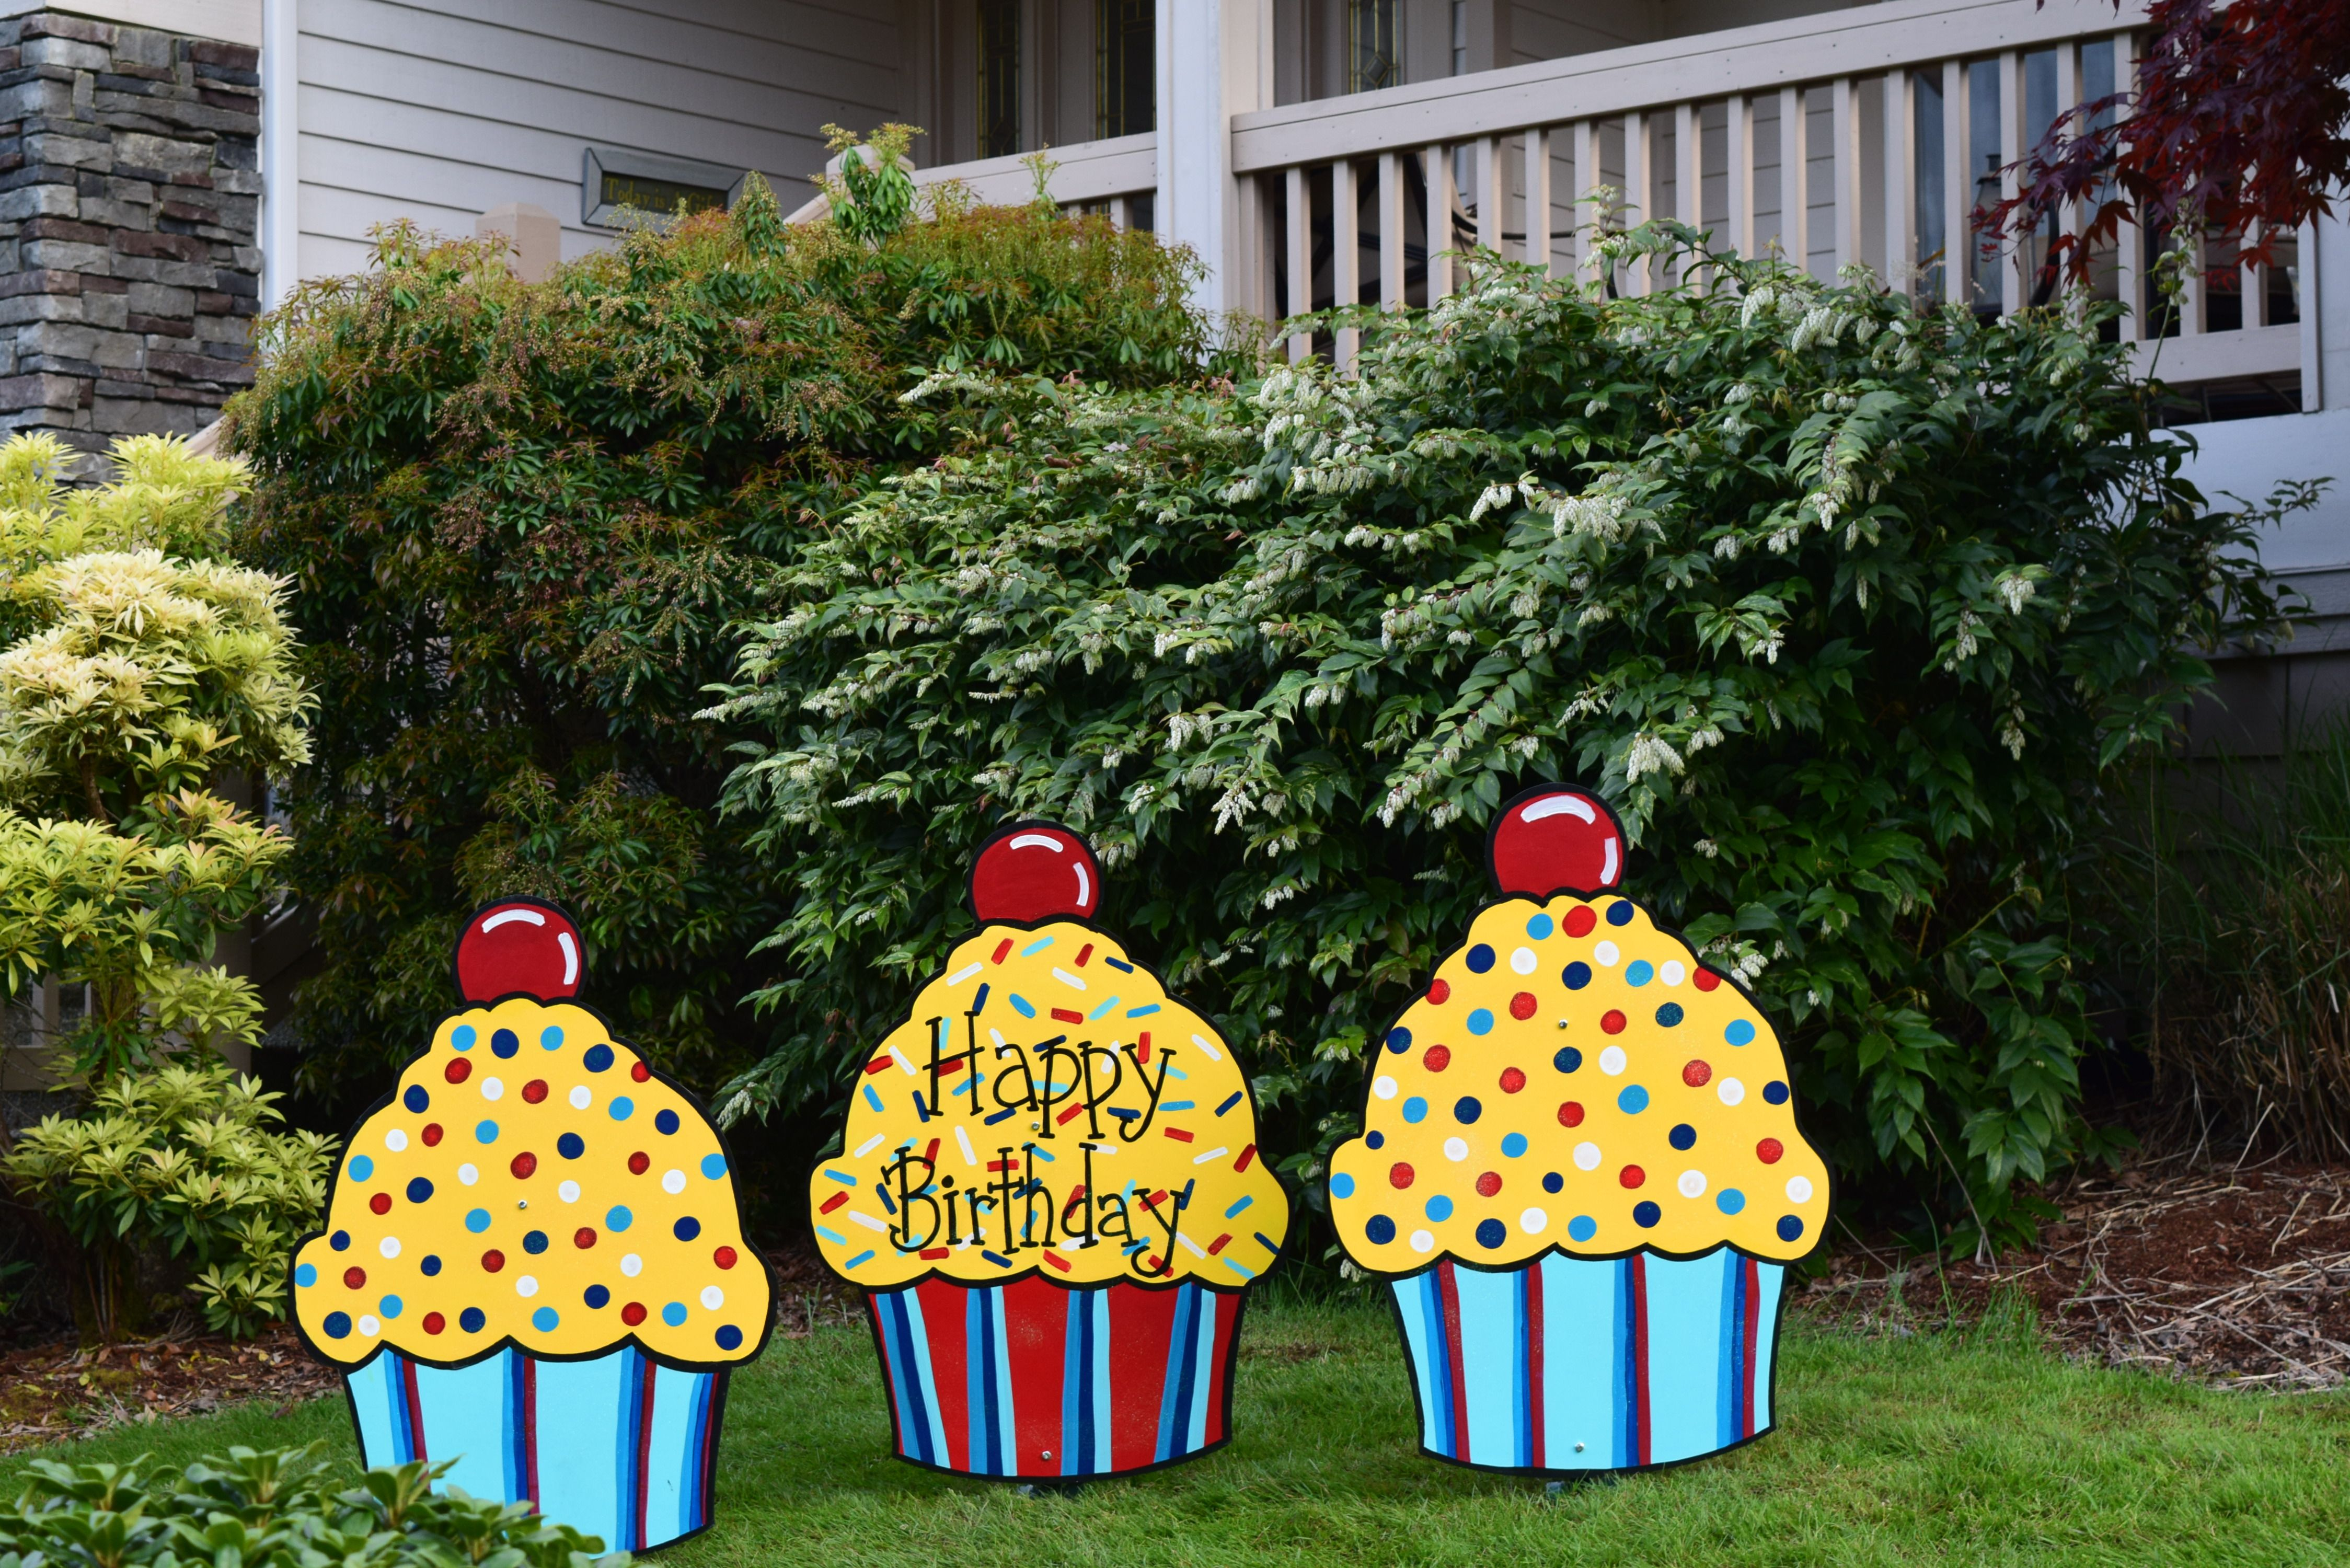 Rent some cute Happy Birthday Cupcake yard signs for your next